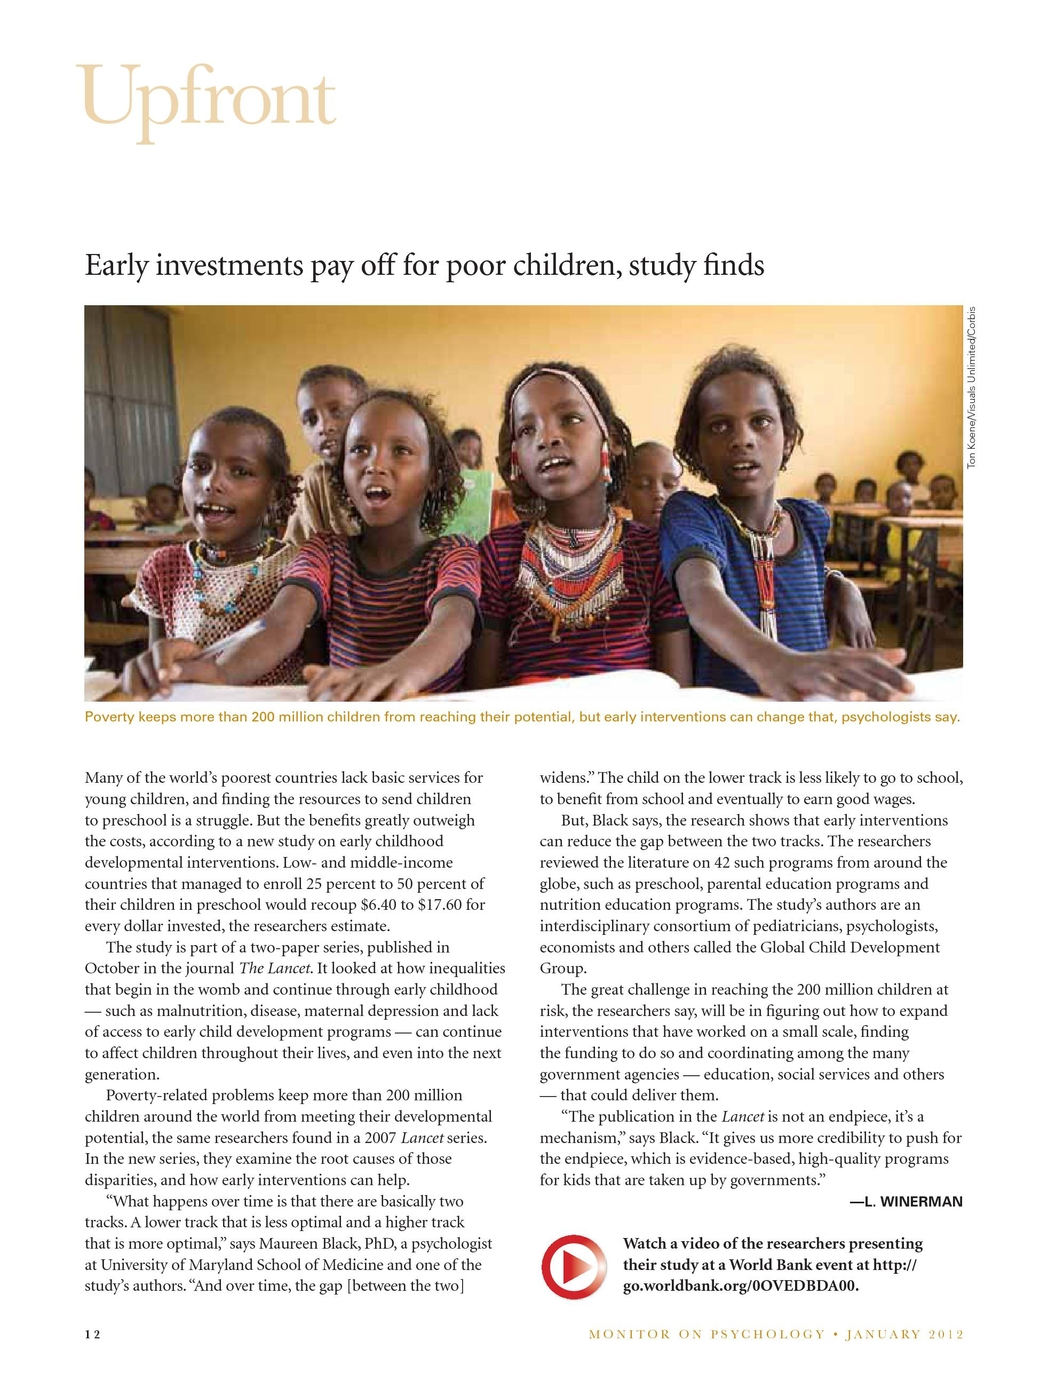 Study Early Intervention Pays Off >> Monitor On Psychology January 2012